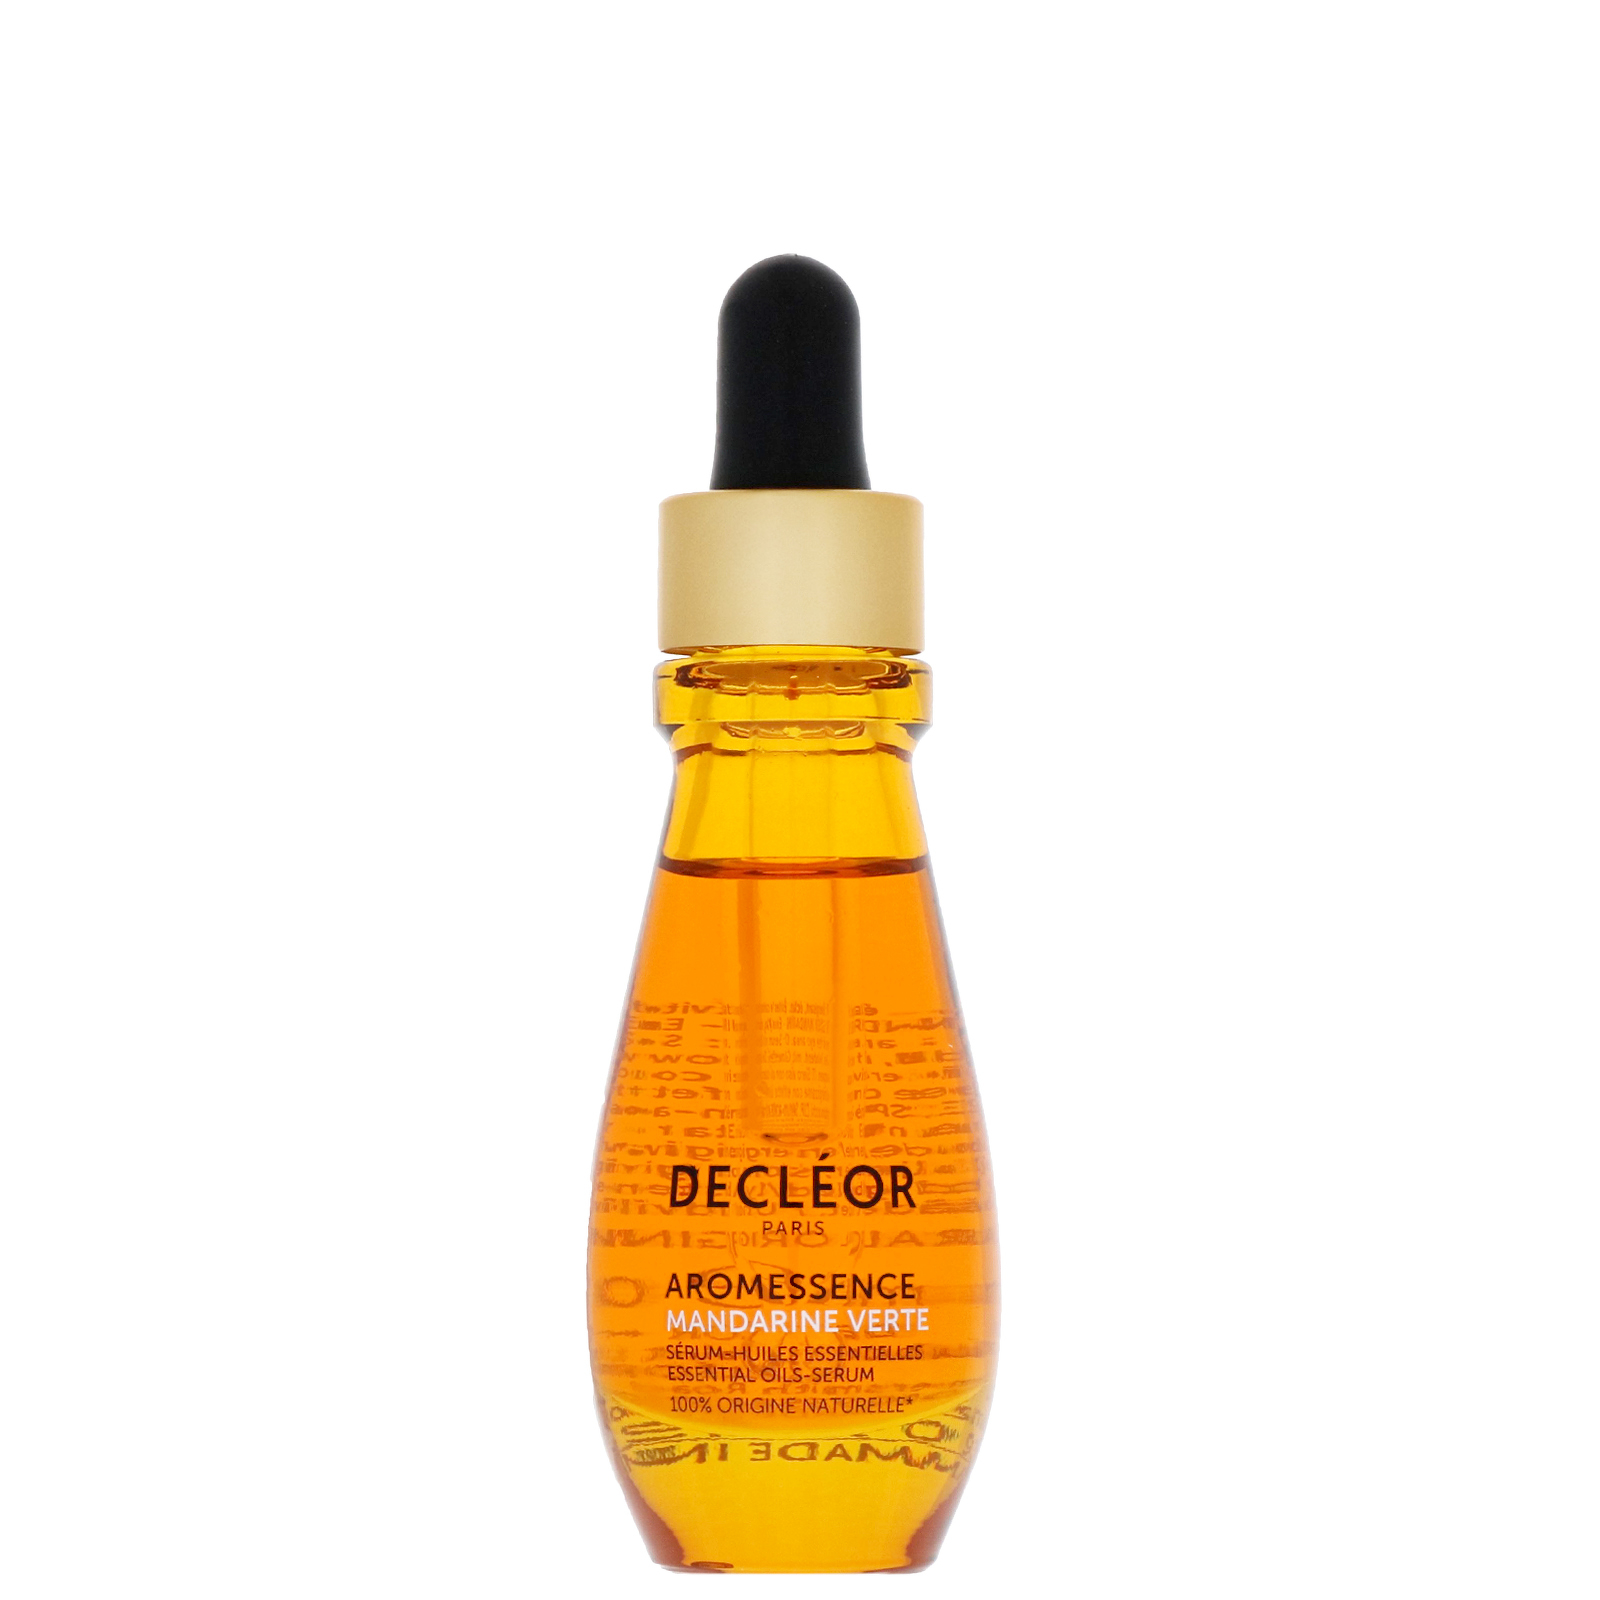 Decleor Aromessence Mandarin Verte Essential Oil Serum 15ml